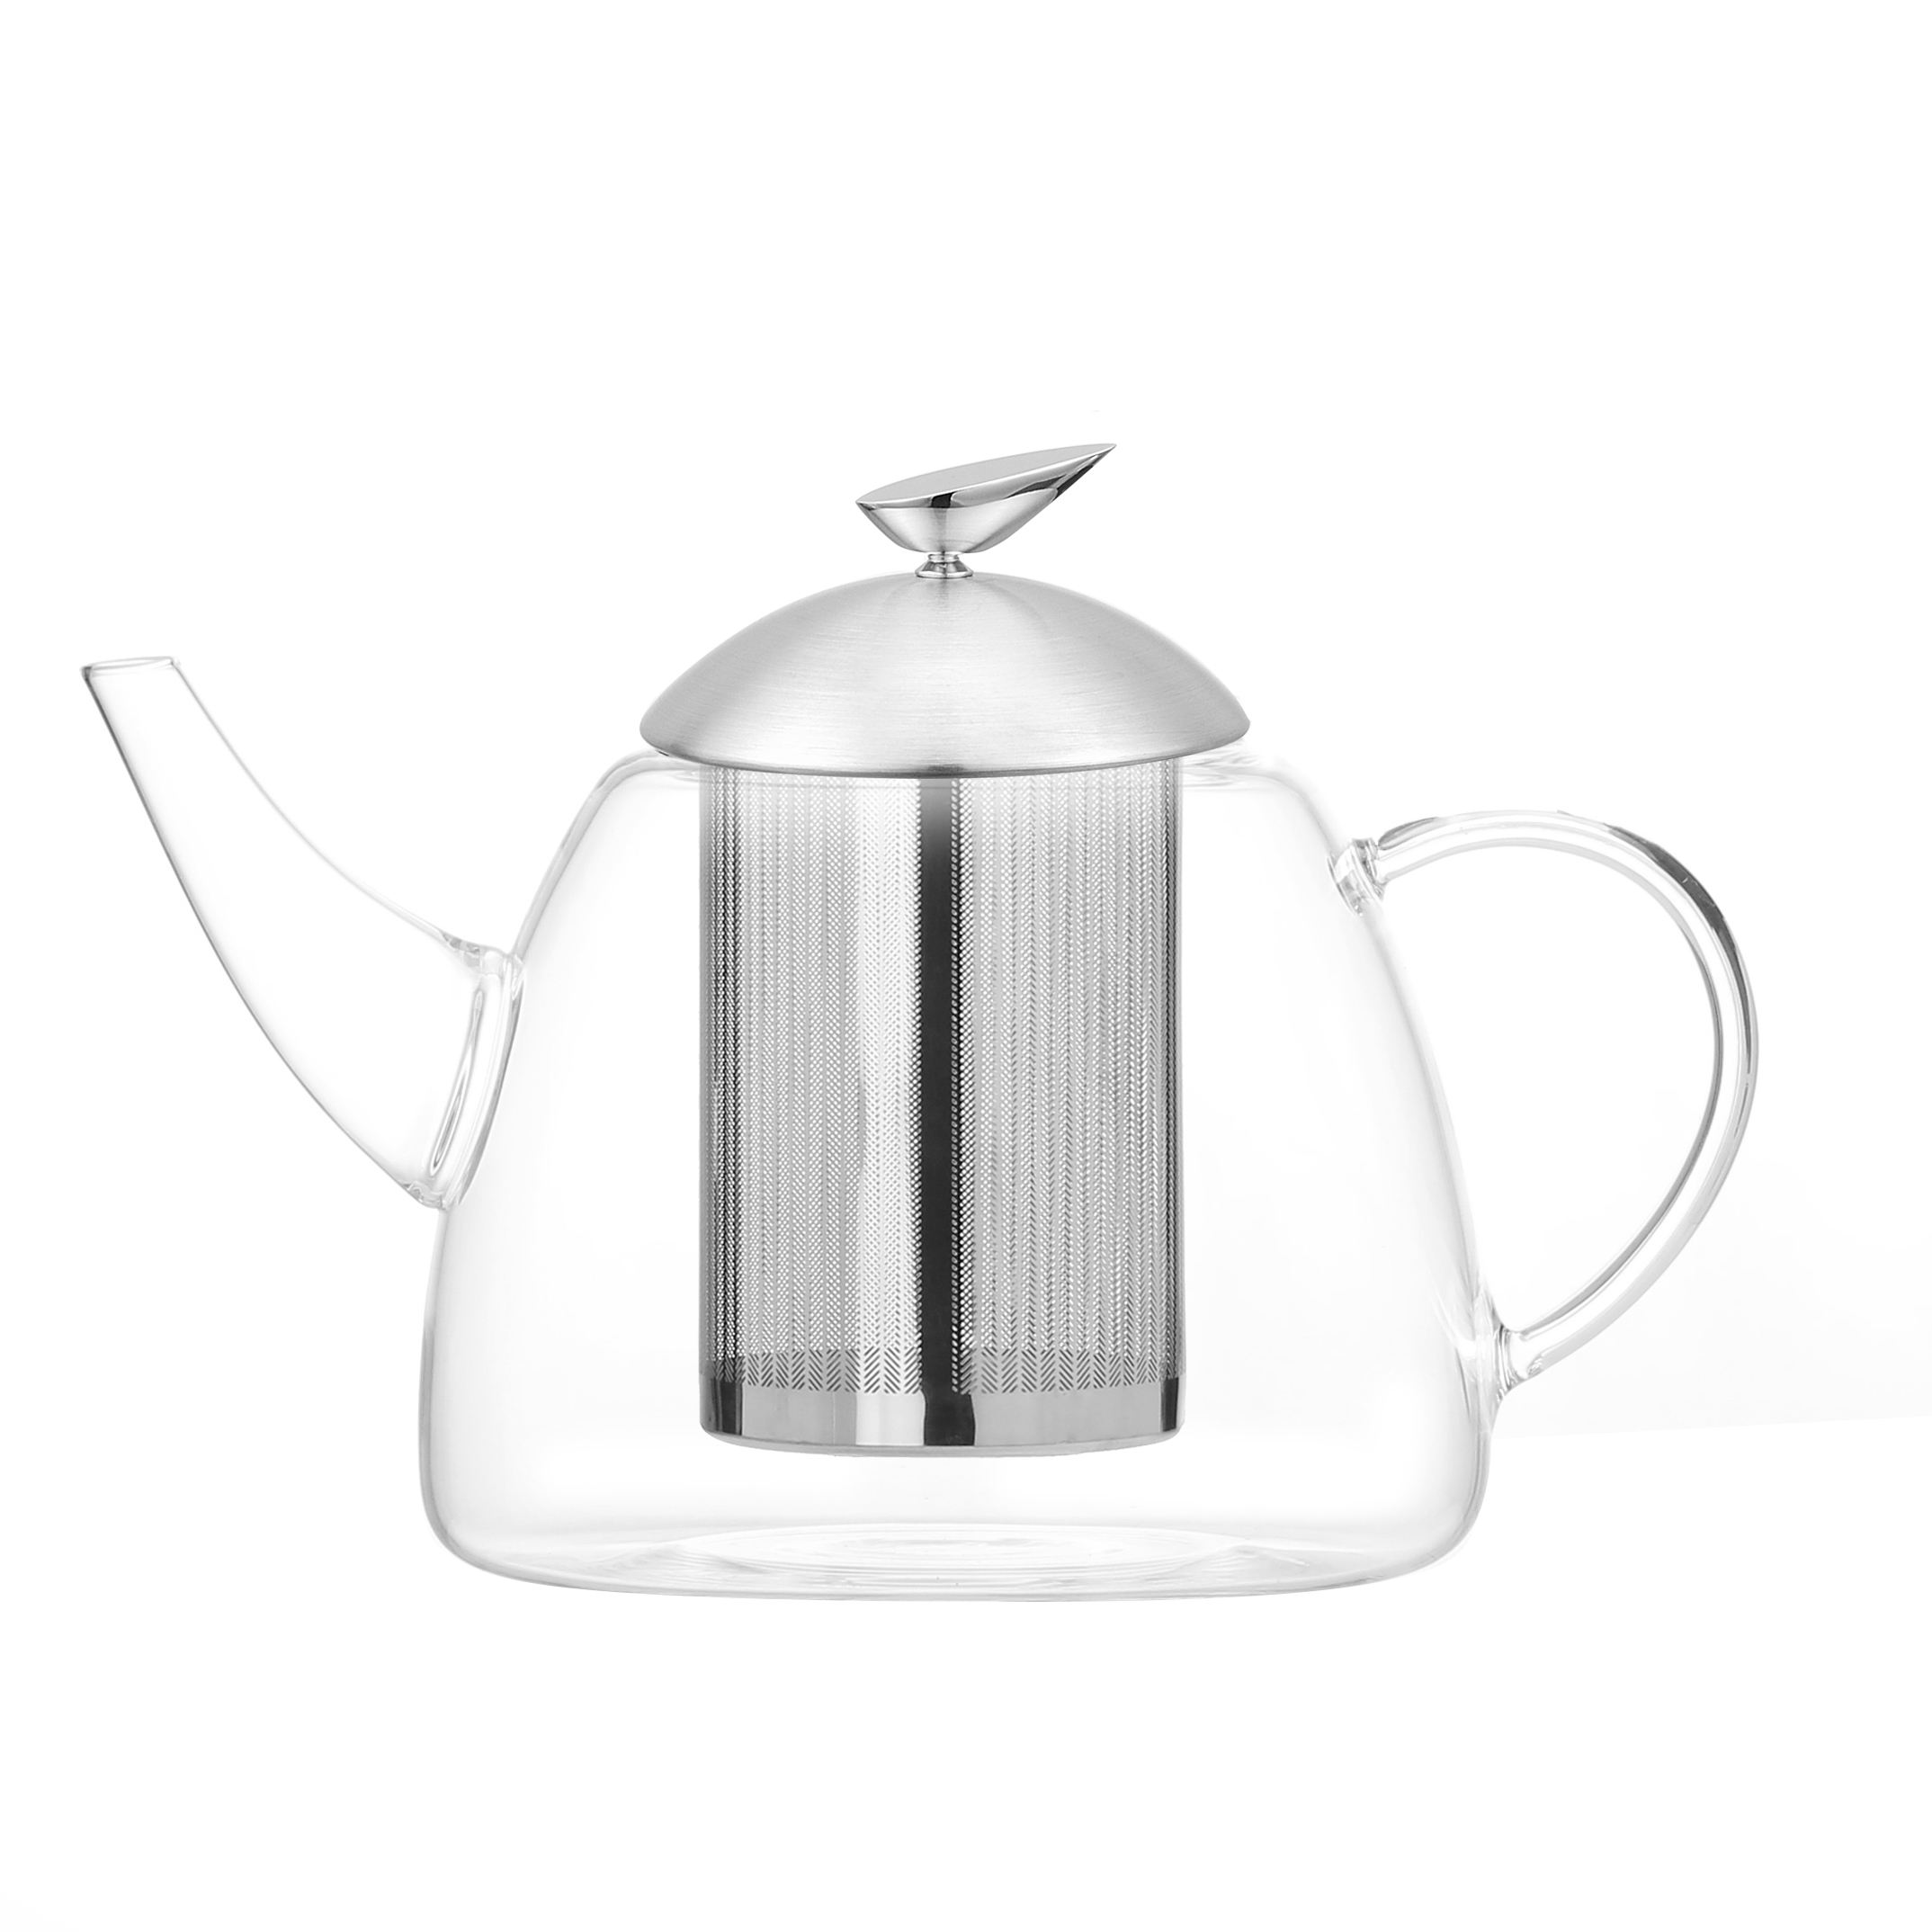 Borosilicate [ Pot Tea ] Tea Pot Glass High Borosilicate Glass Material High Pot Tea With Strainers